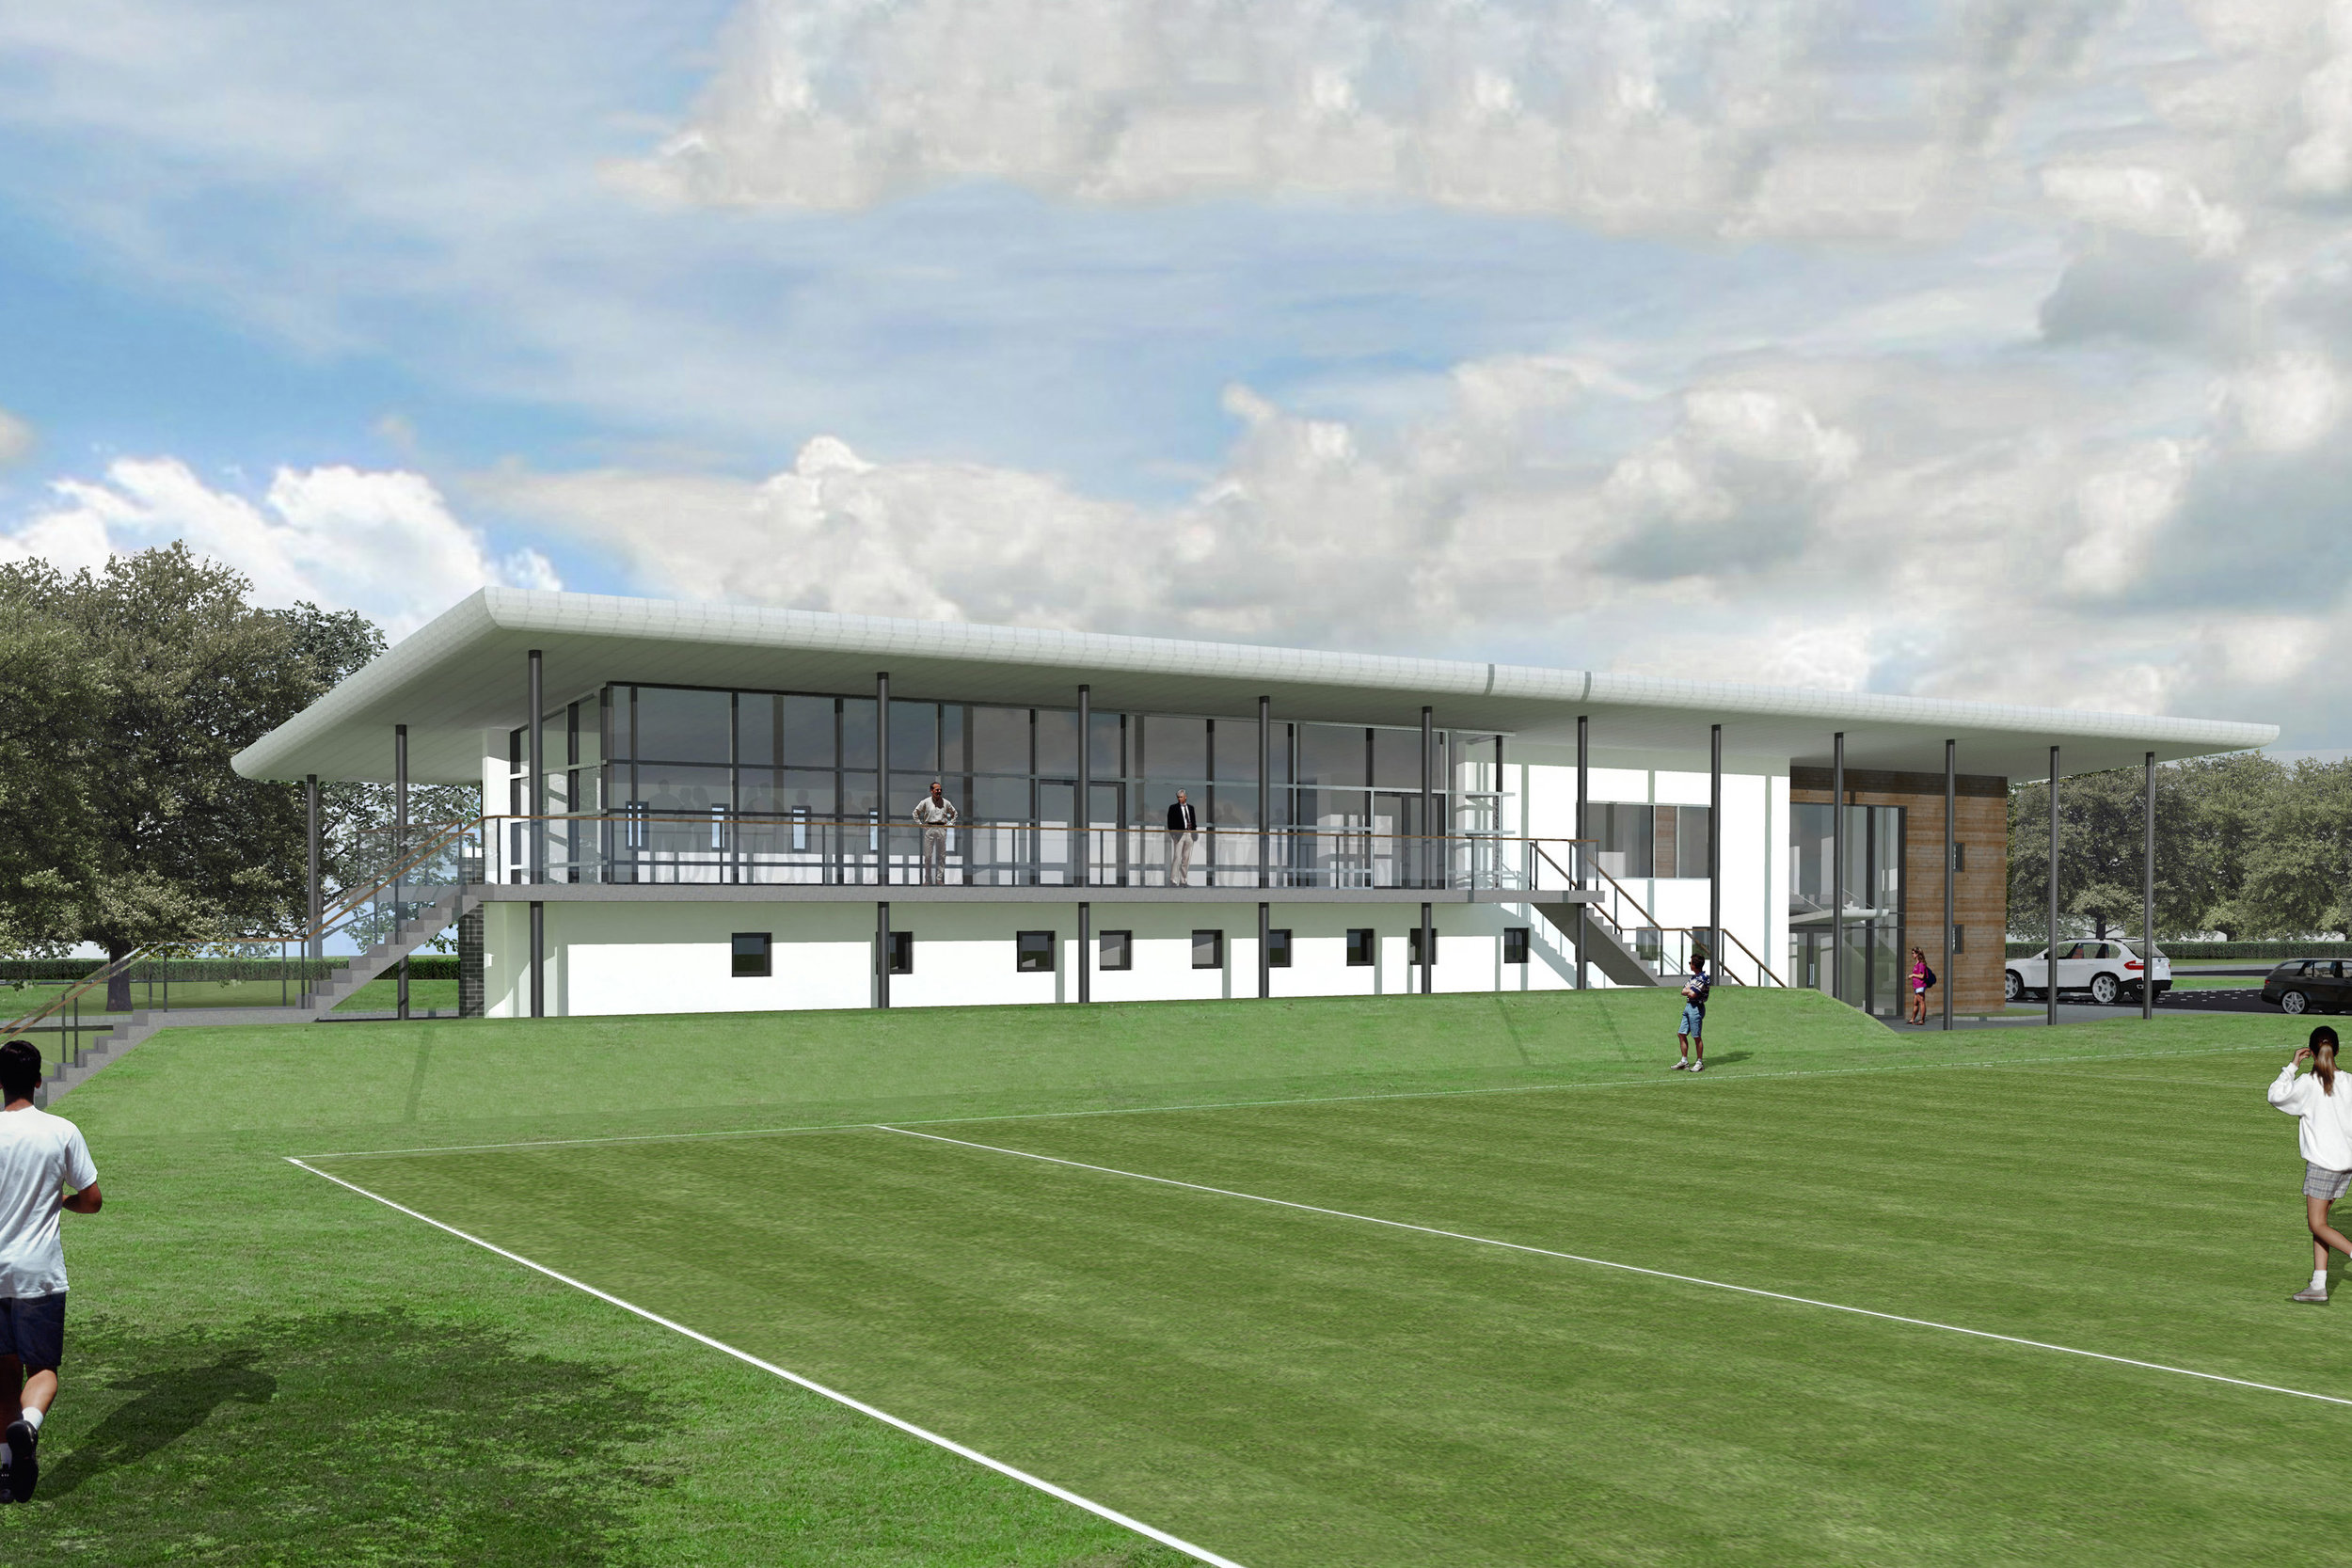 Paul_McAlister_Architects_Rugby_club.jpg